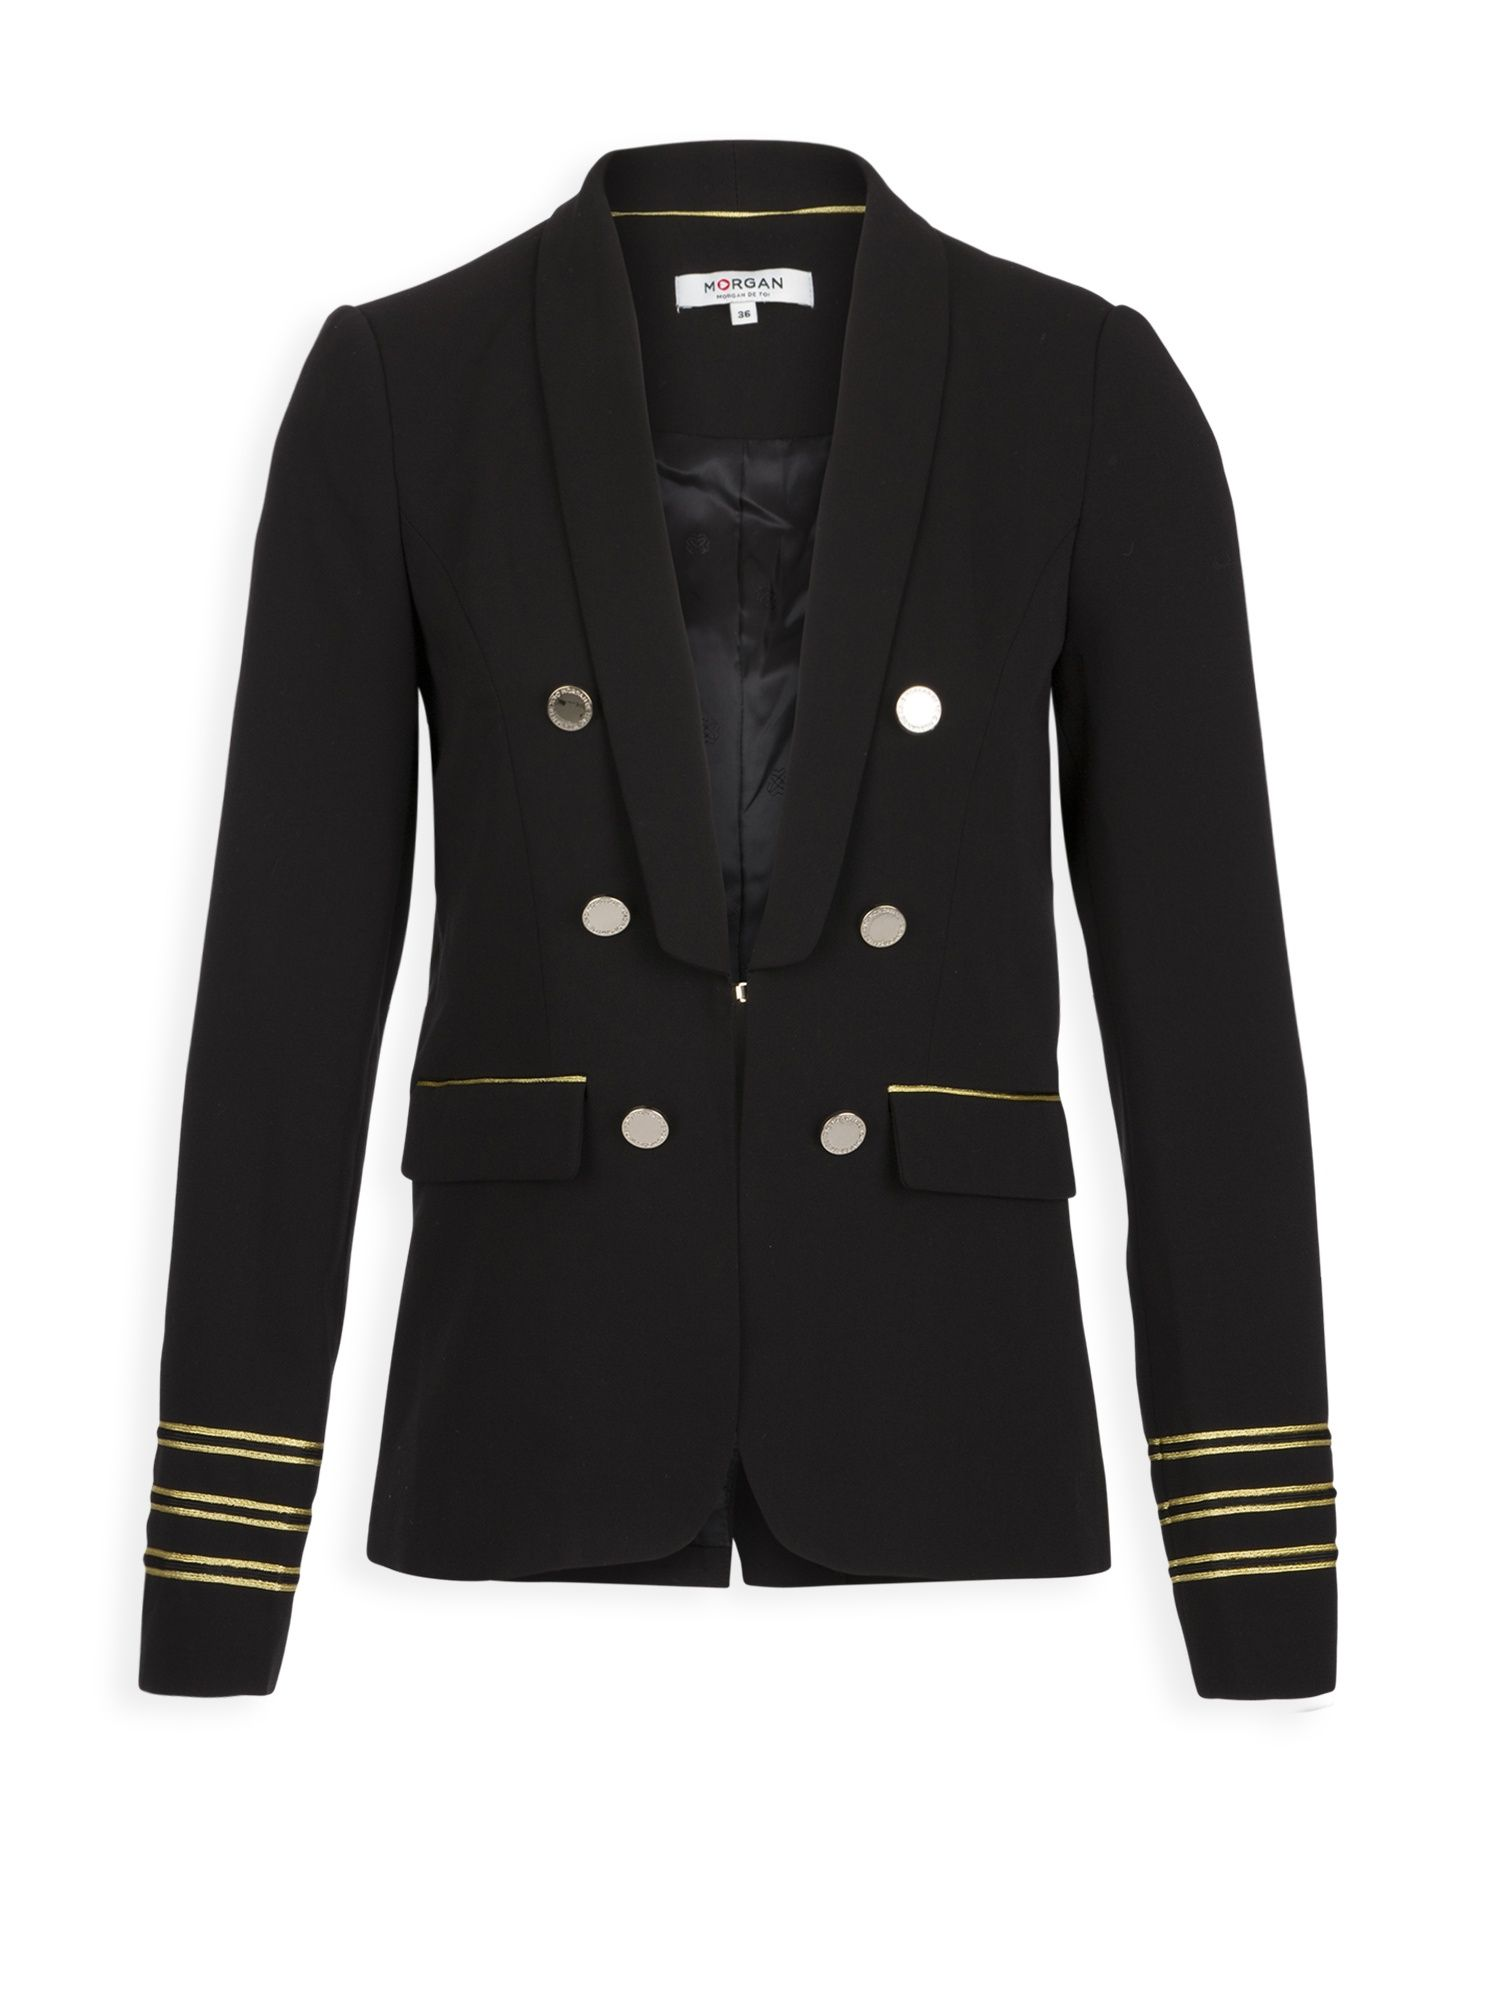 Morgan Military Jacket With Gold Braid, Black